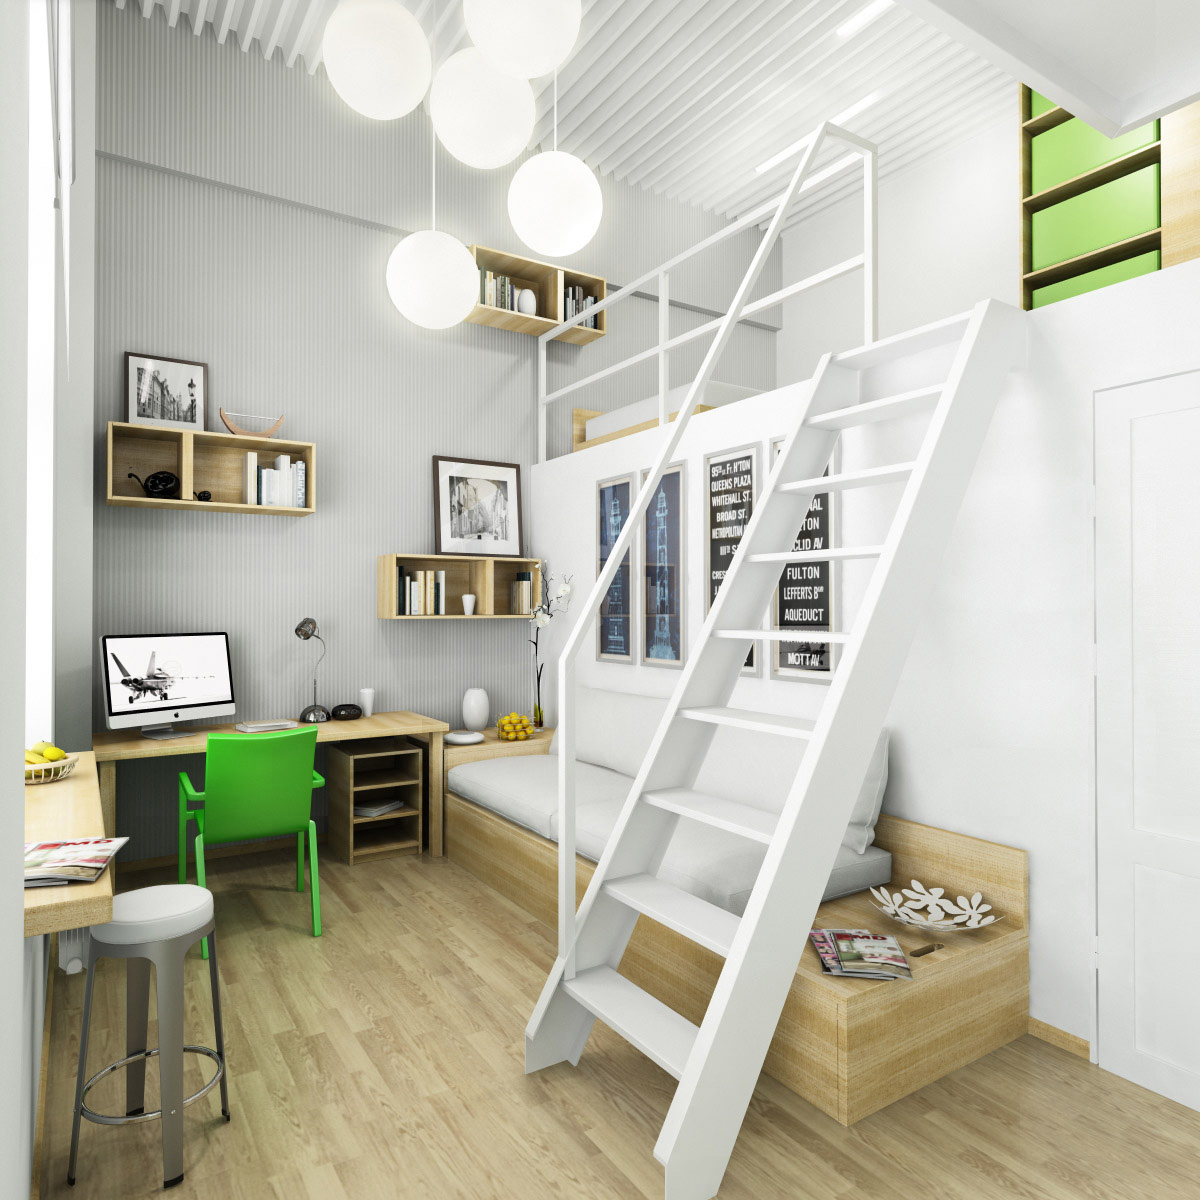 Teen workspaces Teenage room ideas small space